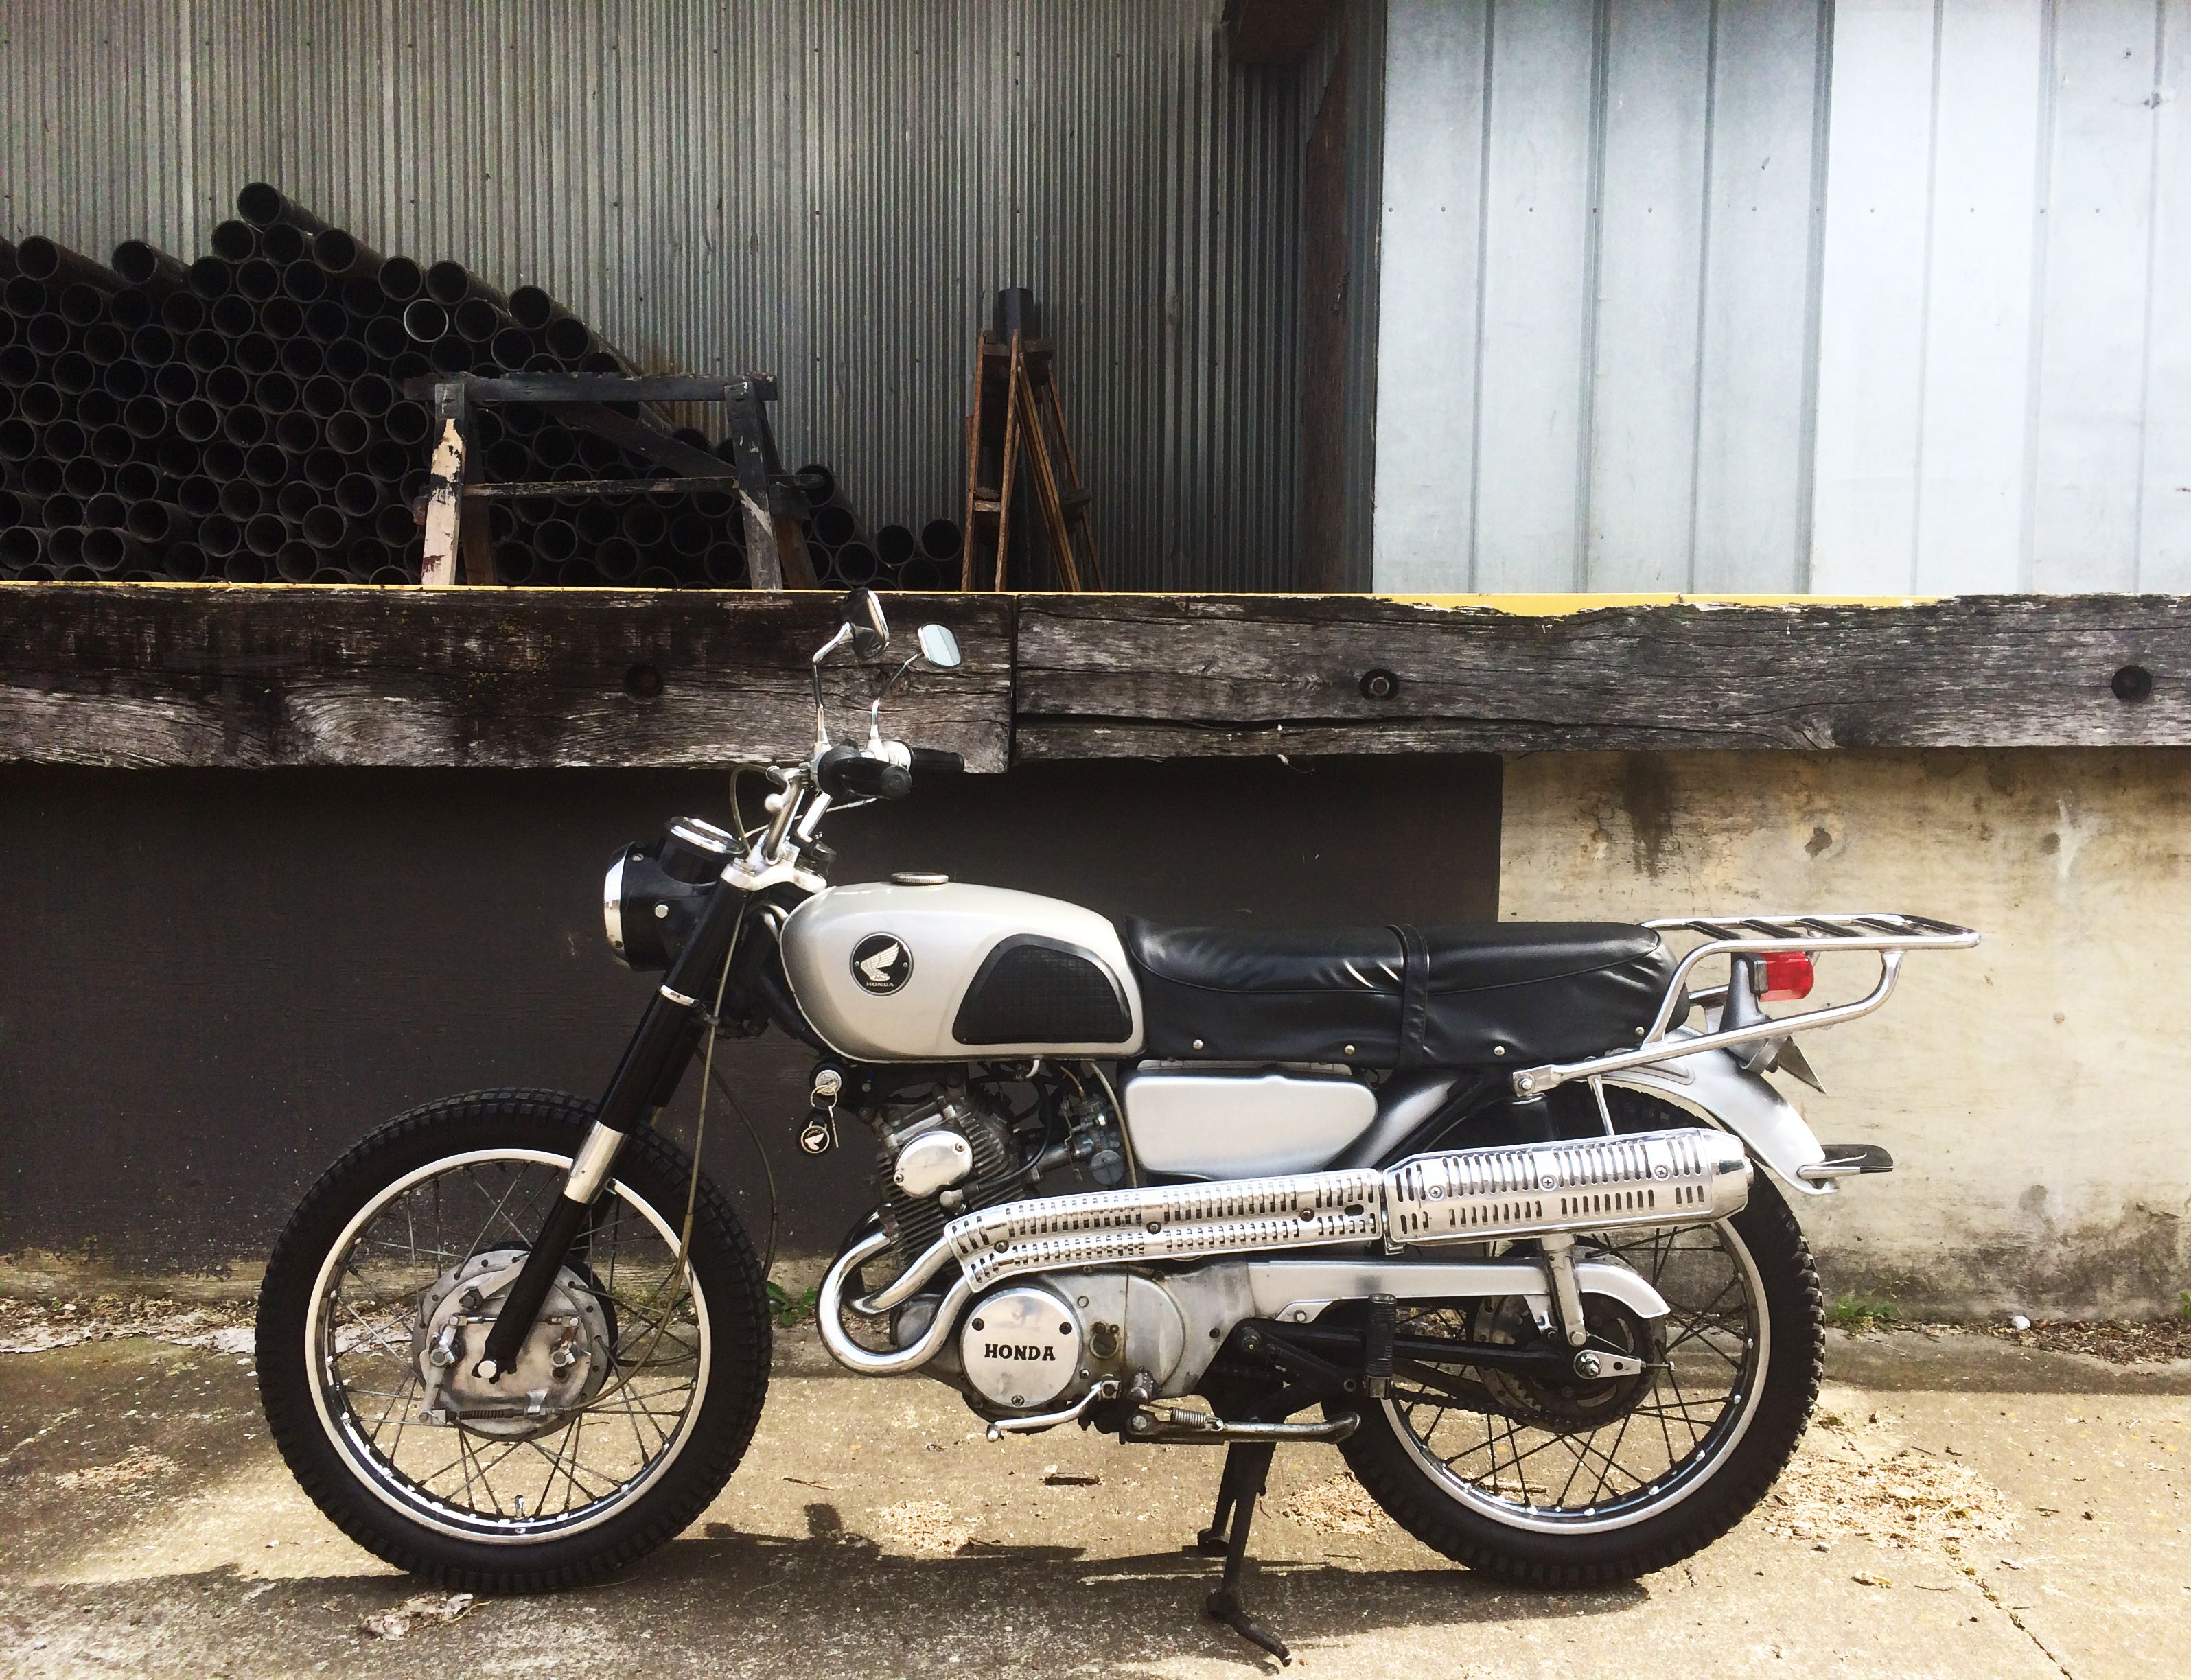 for sale - our 1966 honda cl160 scrambler | nashville, tn - link